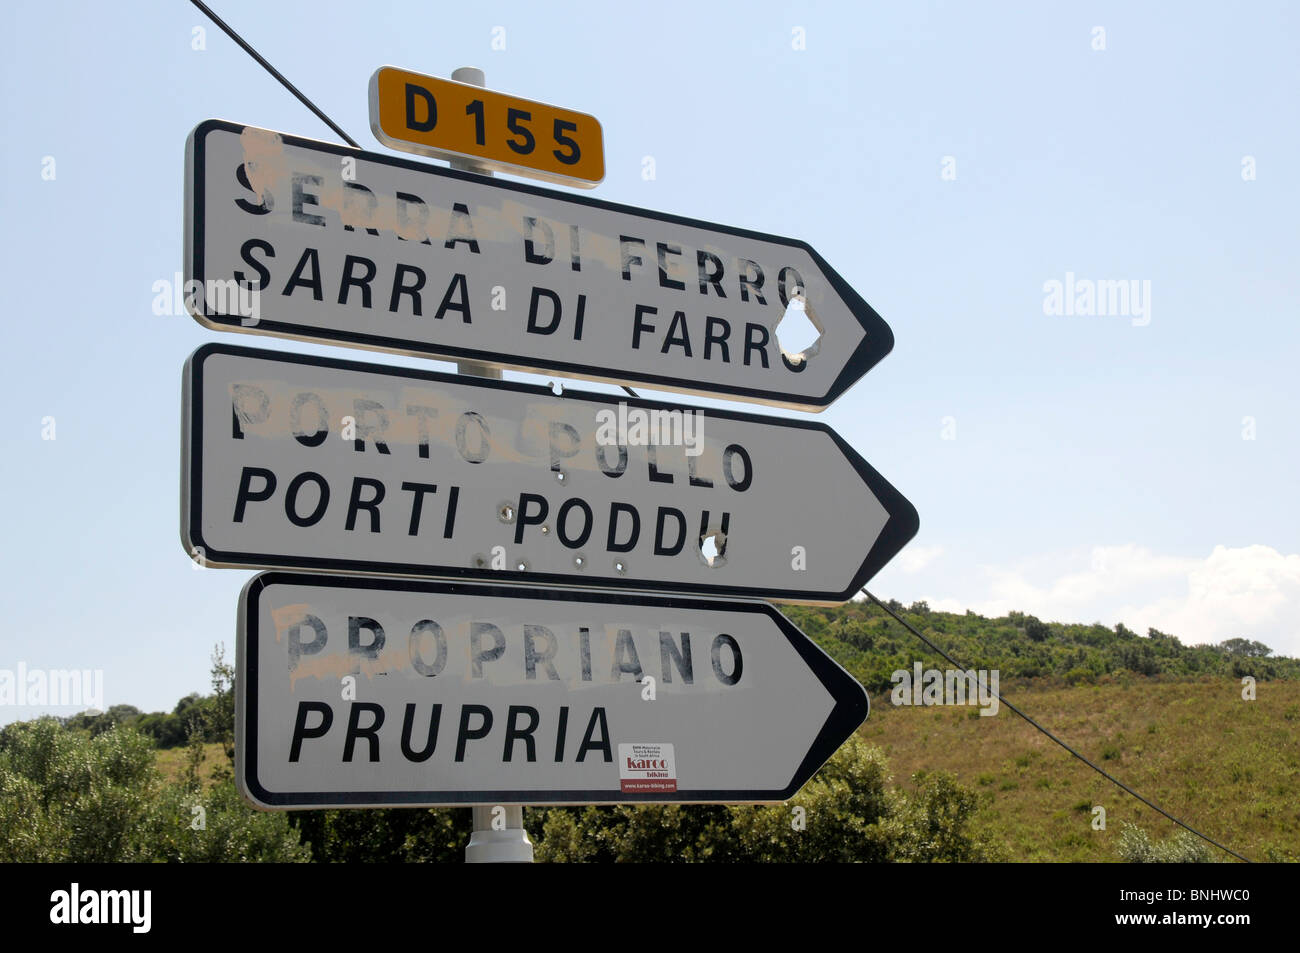 CORSICA BILINGUAL SIGNS DEFACED BY FLNC (FRONT LIBERATION NATIONAL CORSE)  ACTIVISTS AROUND THE ISLAND - Stock Image